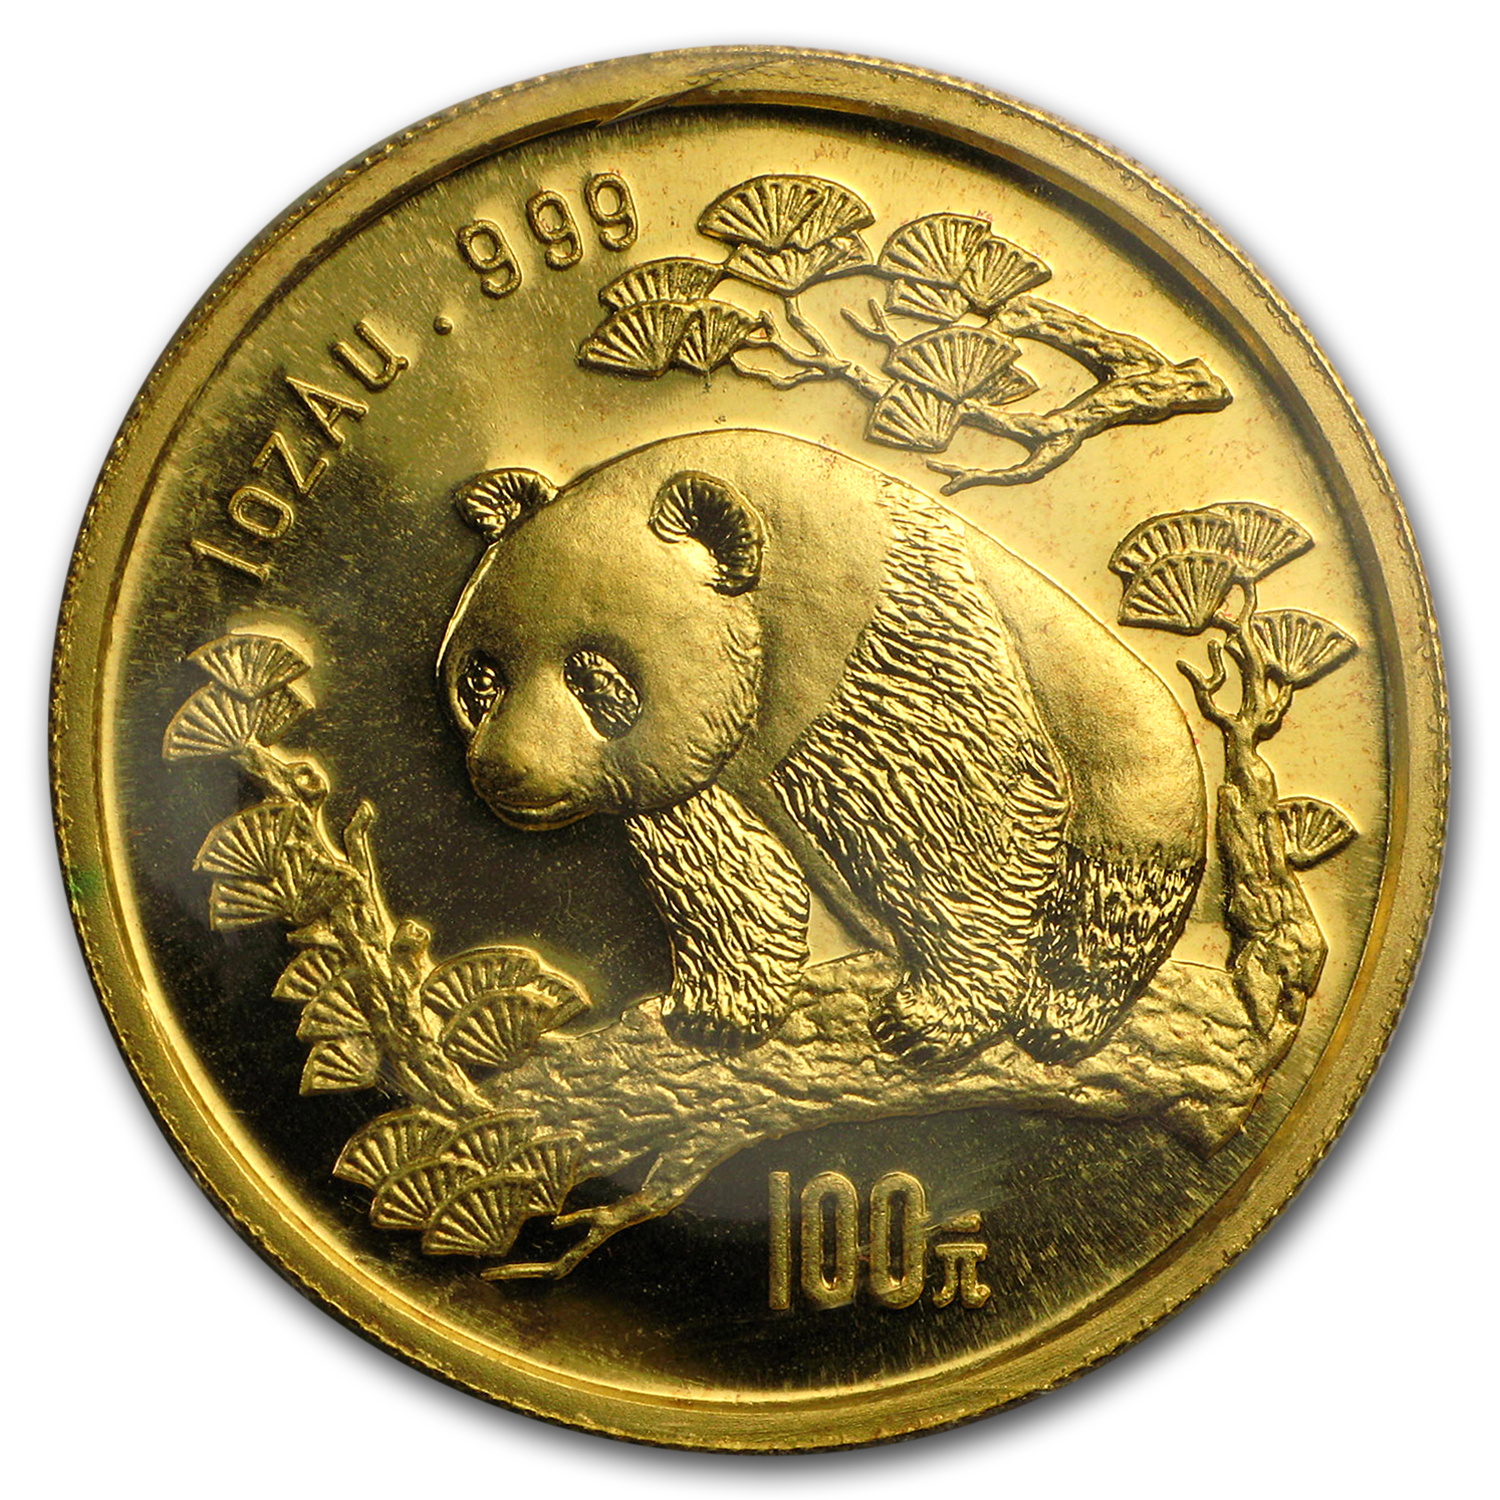 1997 1 oz Gold Chinese Panda - Small Date (Sealed)